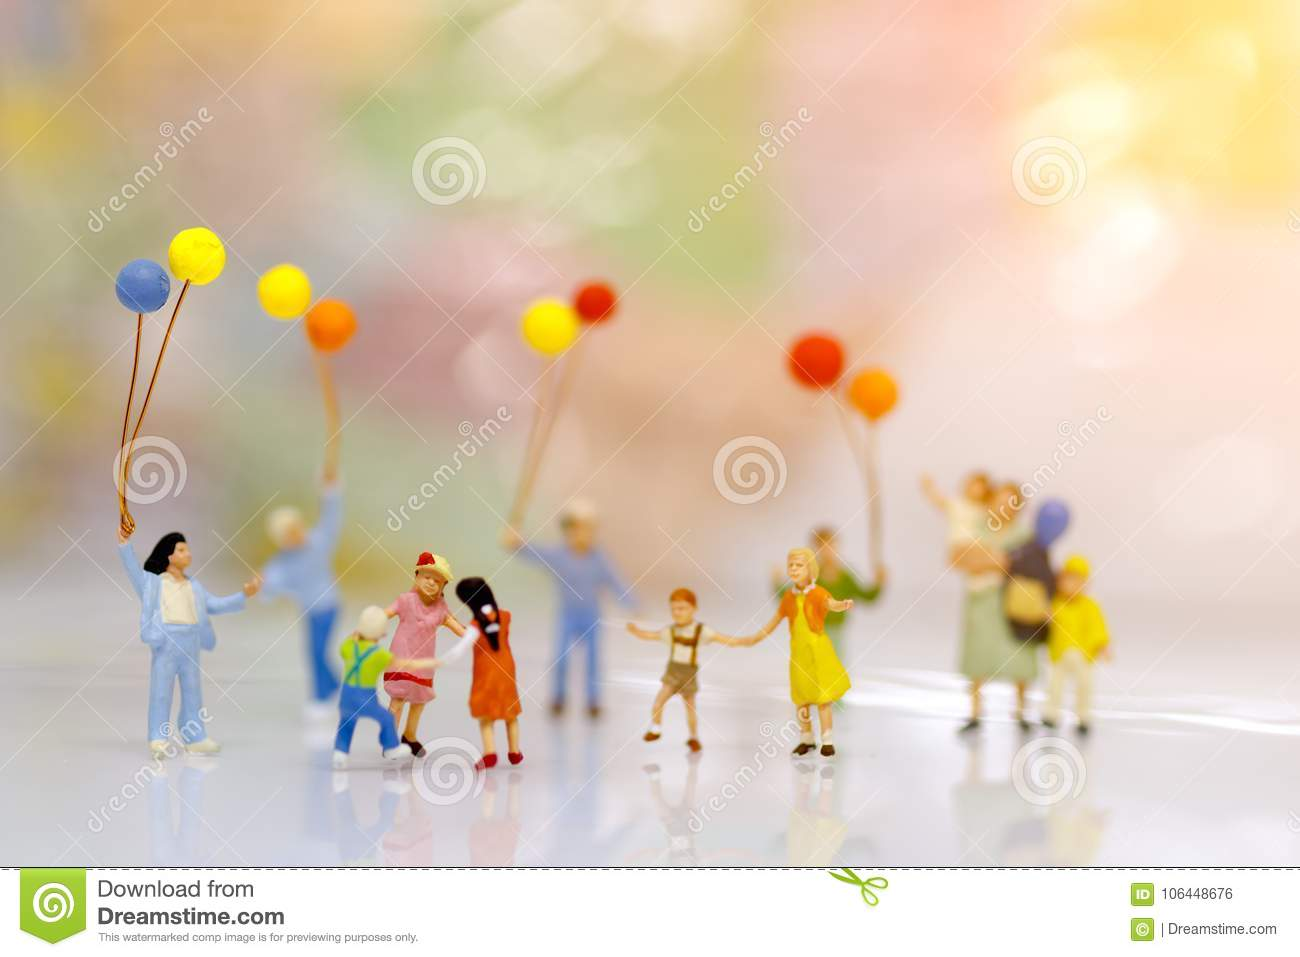 Miniature people, family and children with colorful balloons standing in front of house,